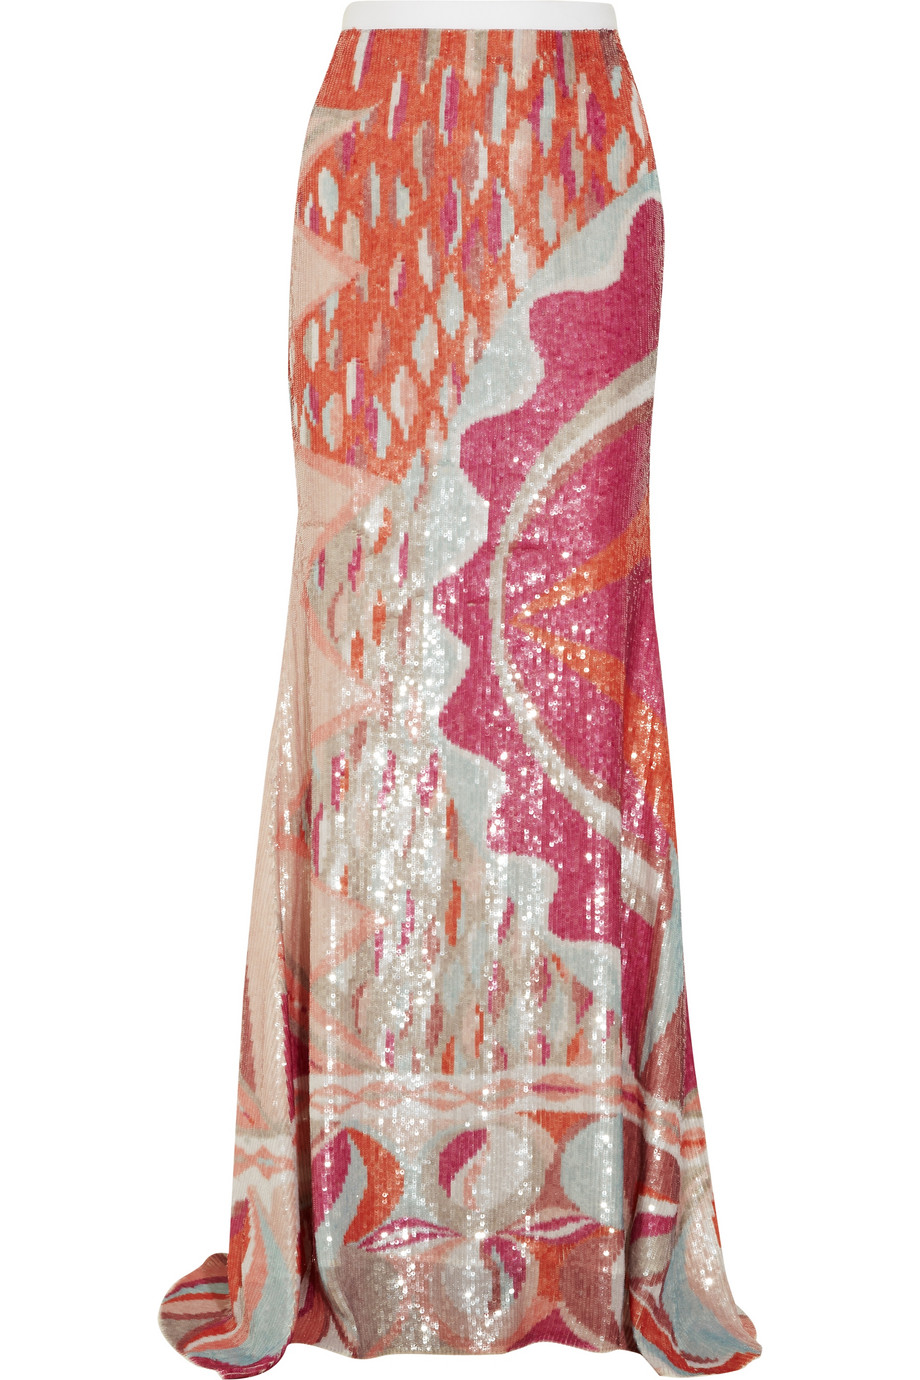 Emilio pucci Sequined Silk Maxi Skirt | Lyst